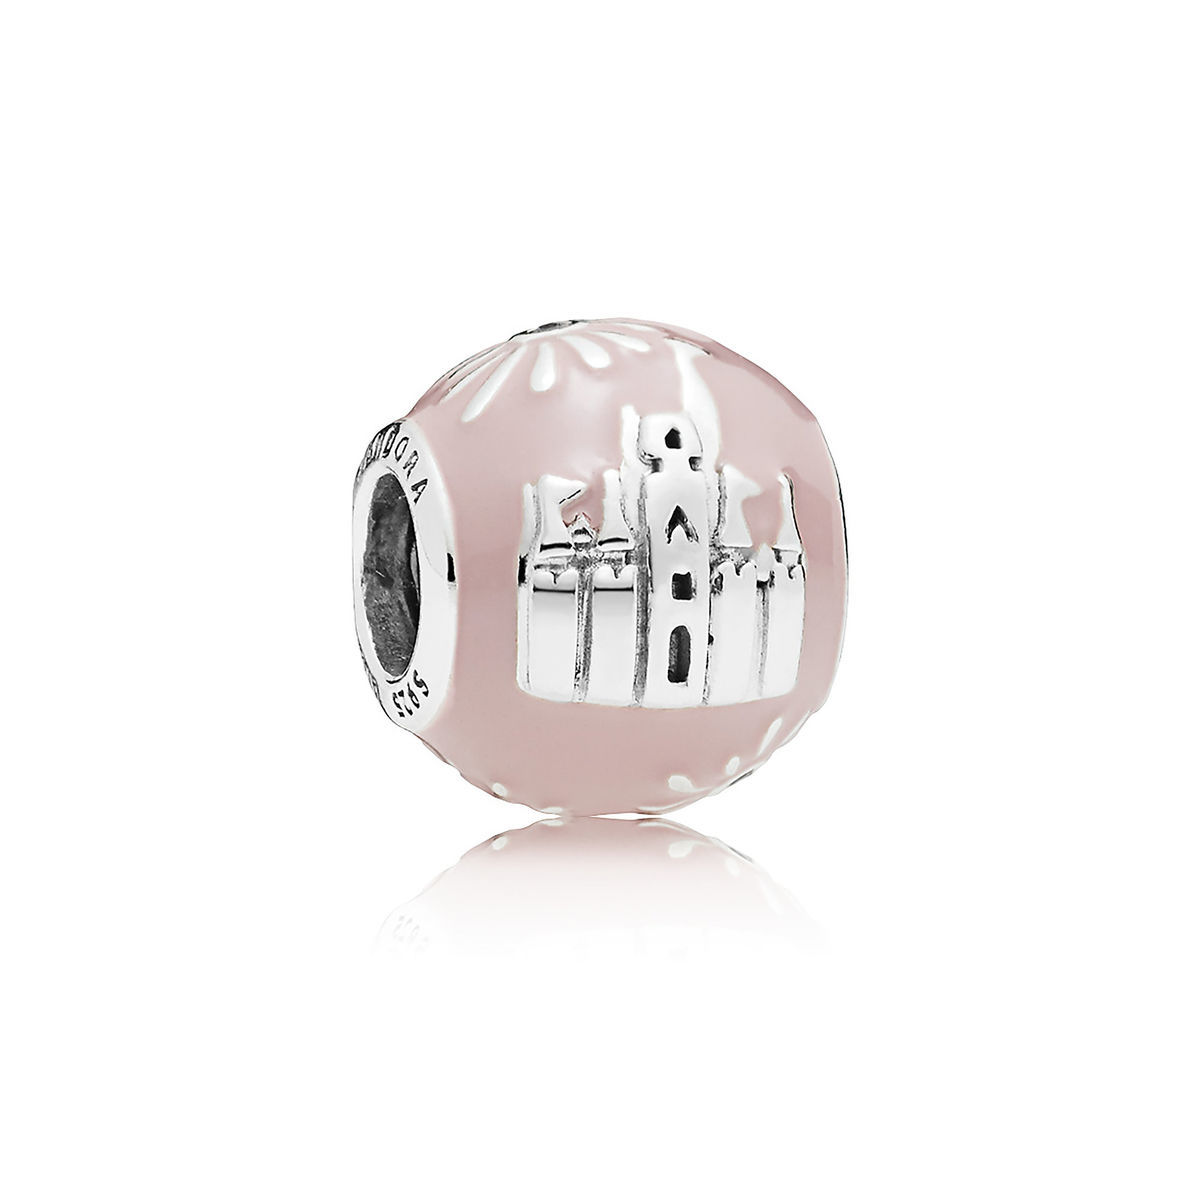 2019 Disney Theme Parks Pandora Charm Out Now